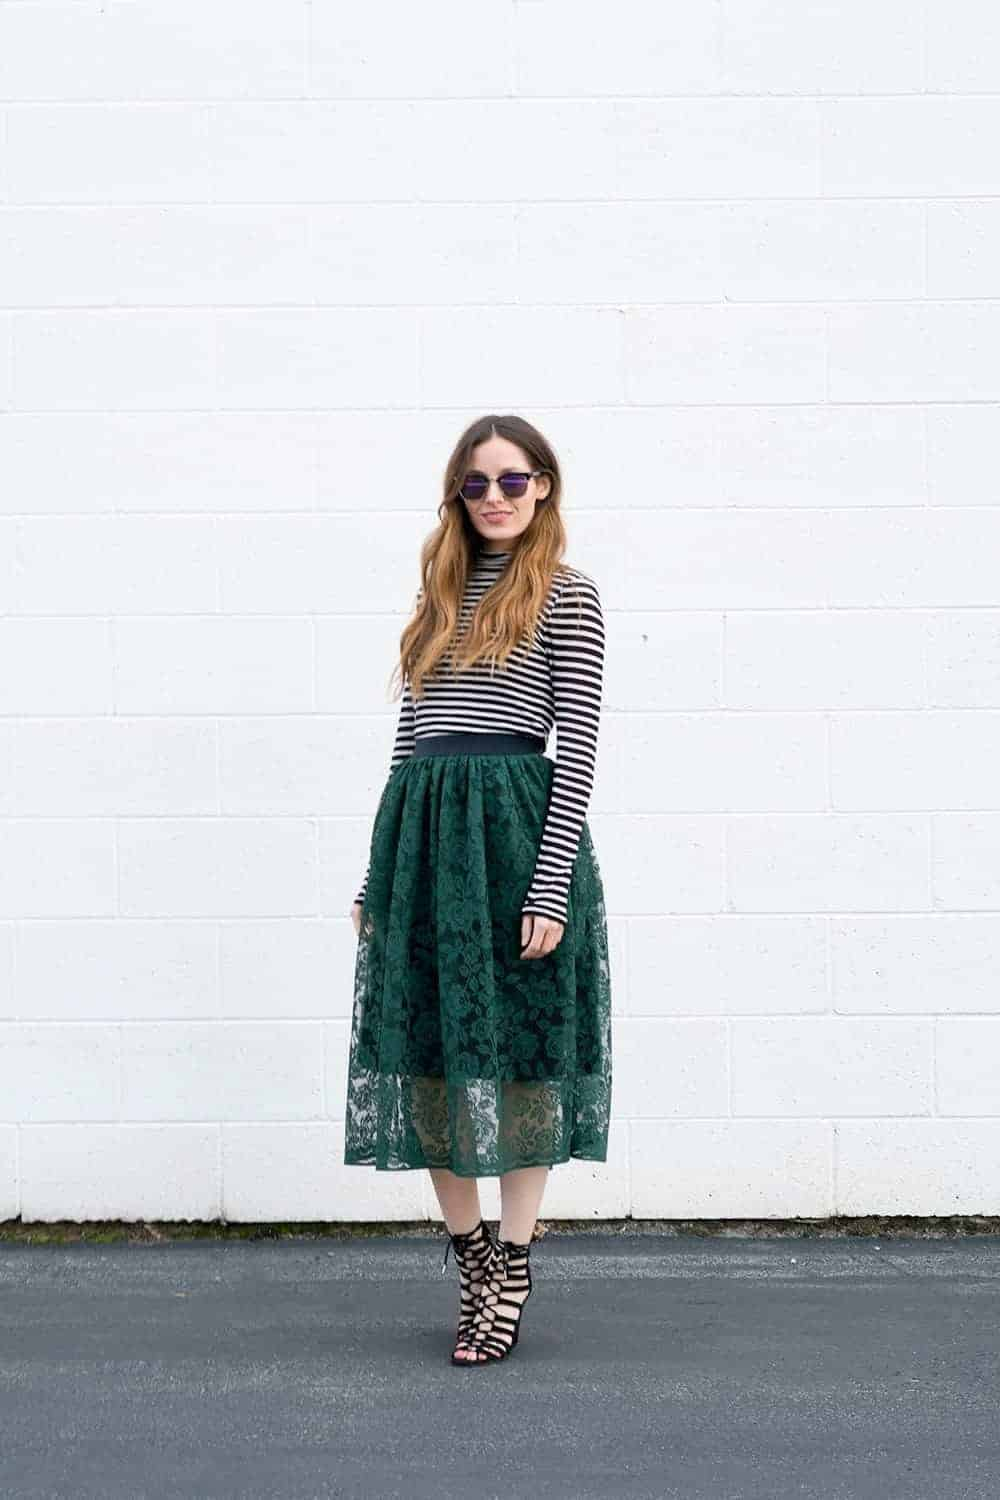 love this green lace skirt step by step sewing pattern tutorial by cotton and curls.Click through for easy to follow steps and video tutorial to make one yourself. as well as other great ideas for skirts to sew in minutes